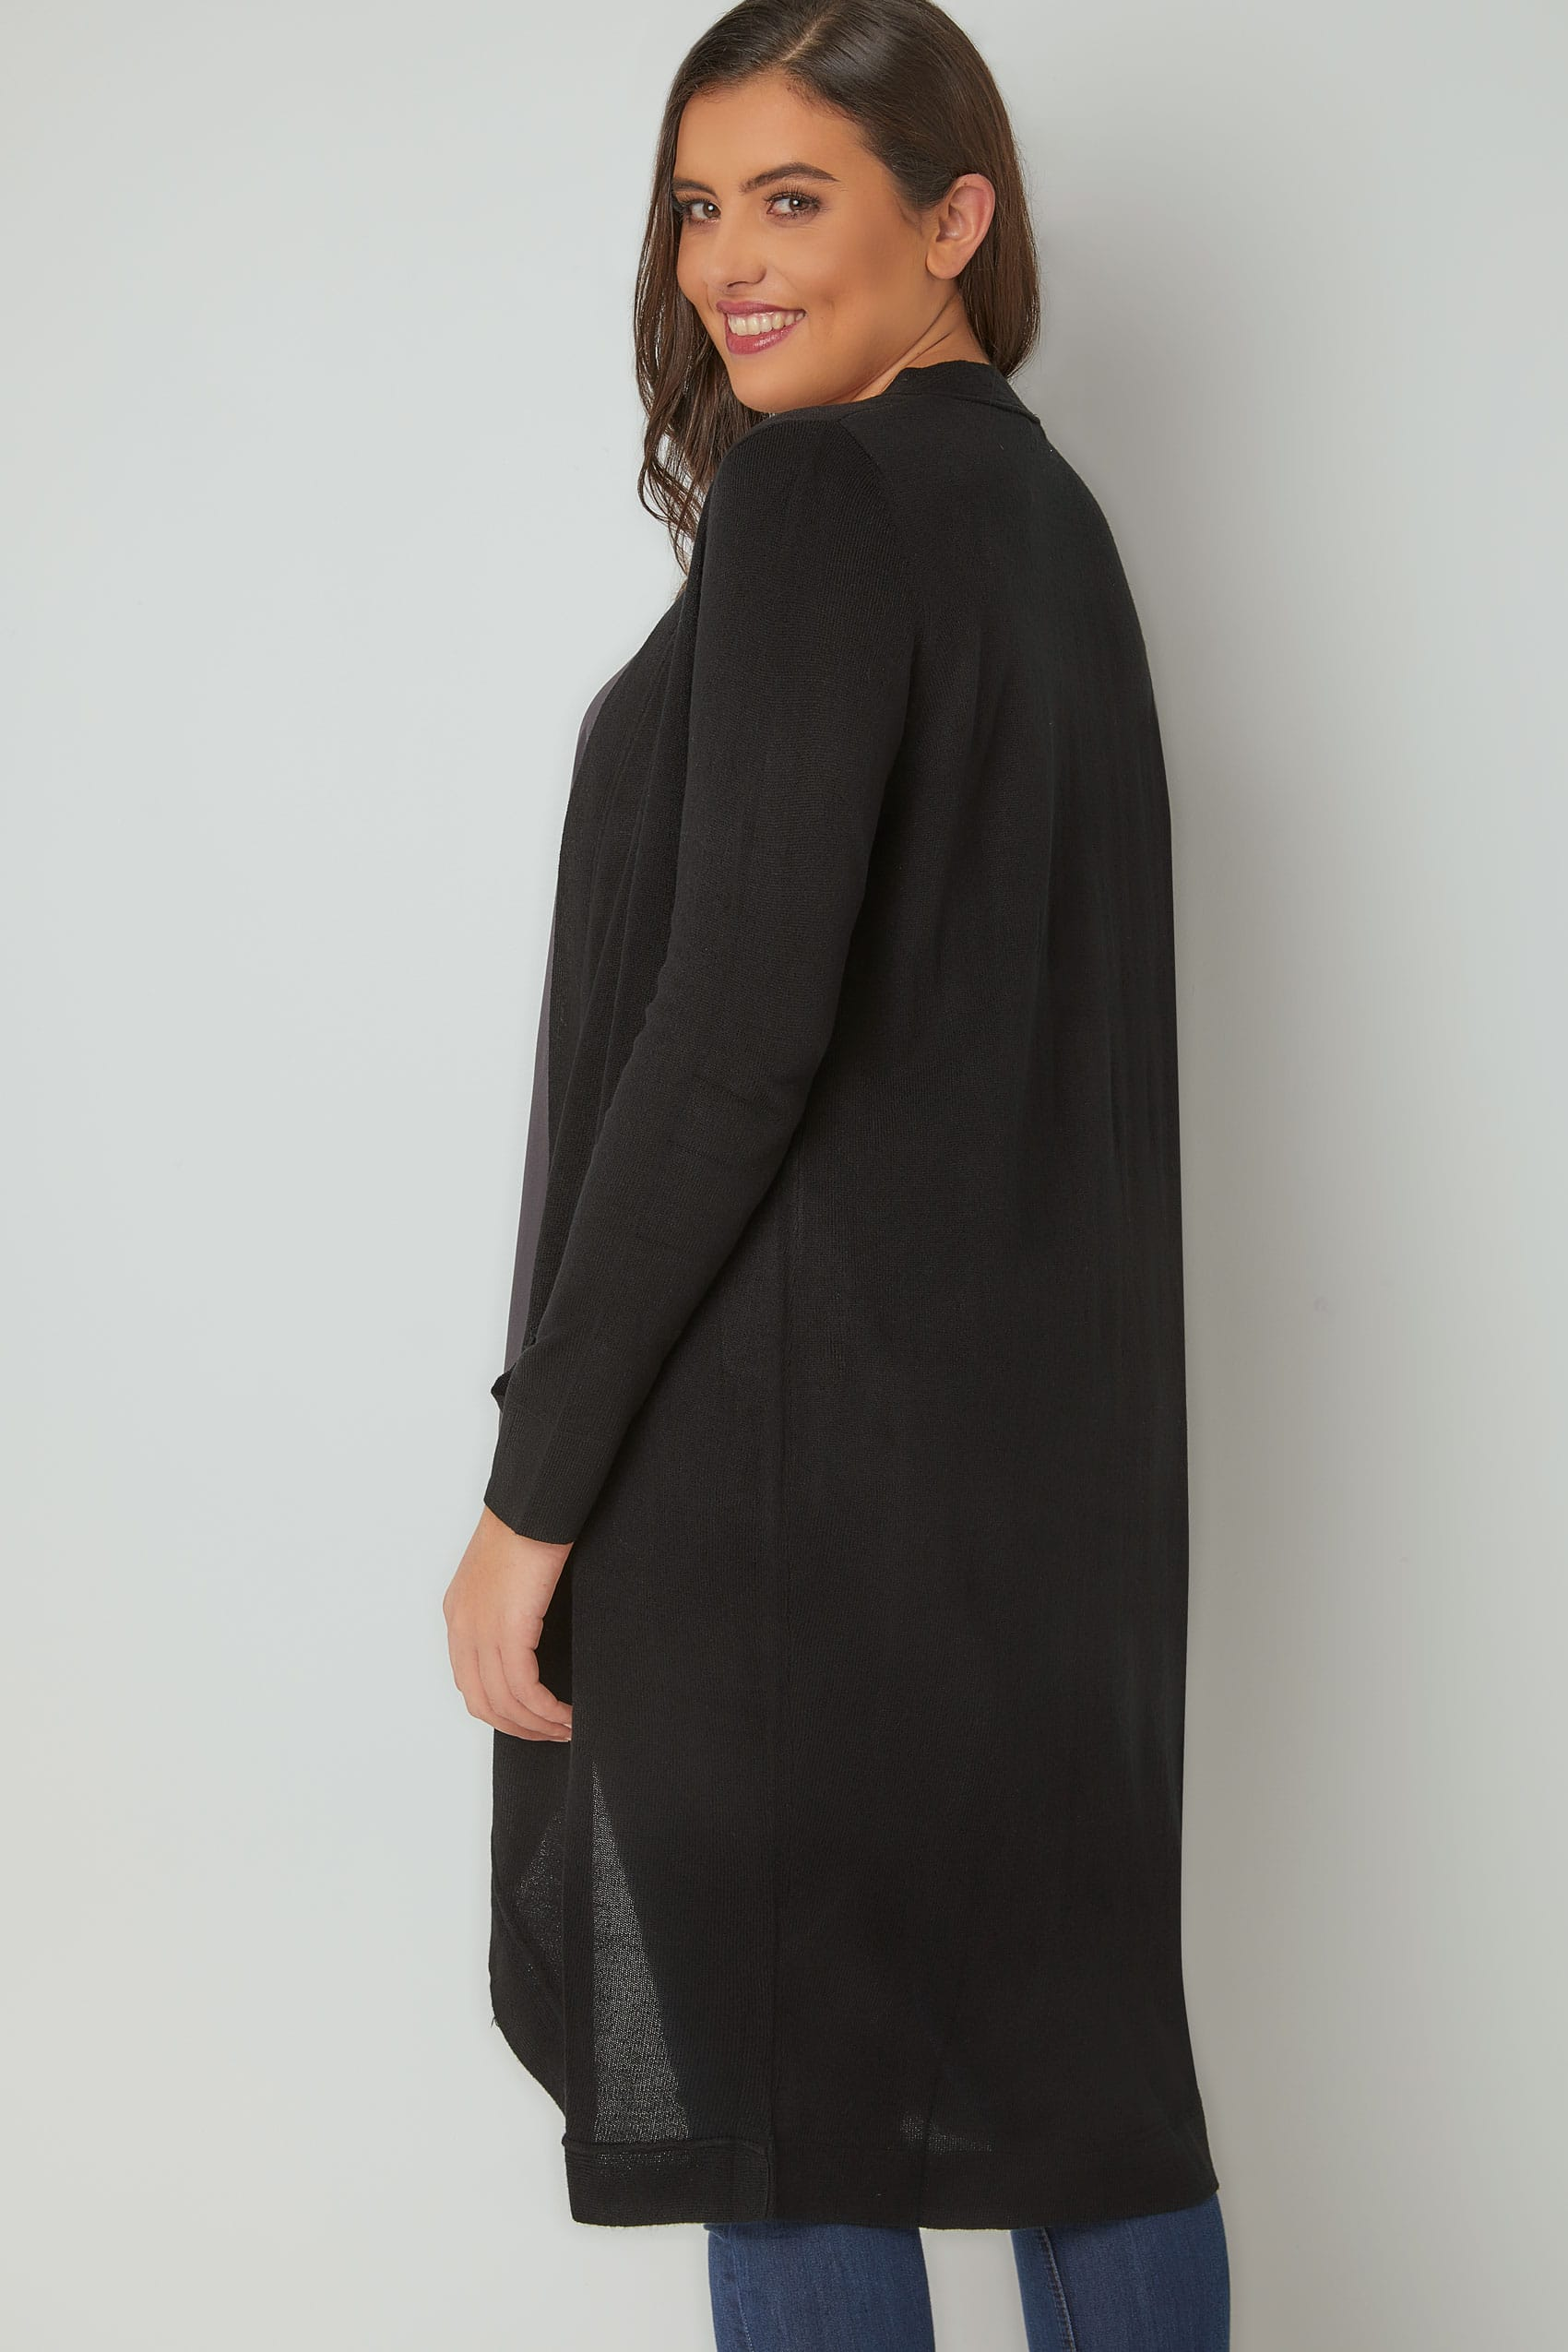 Black Longline Cardigan With Pockets, Plus size 16 to 36